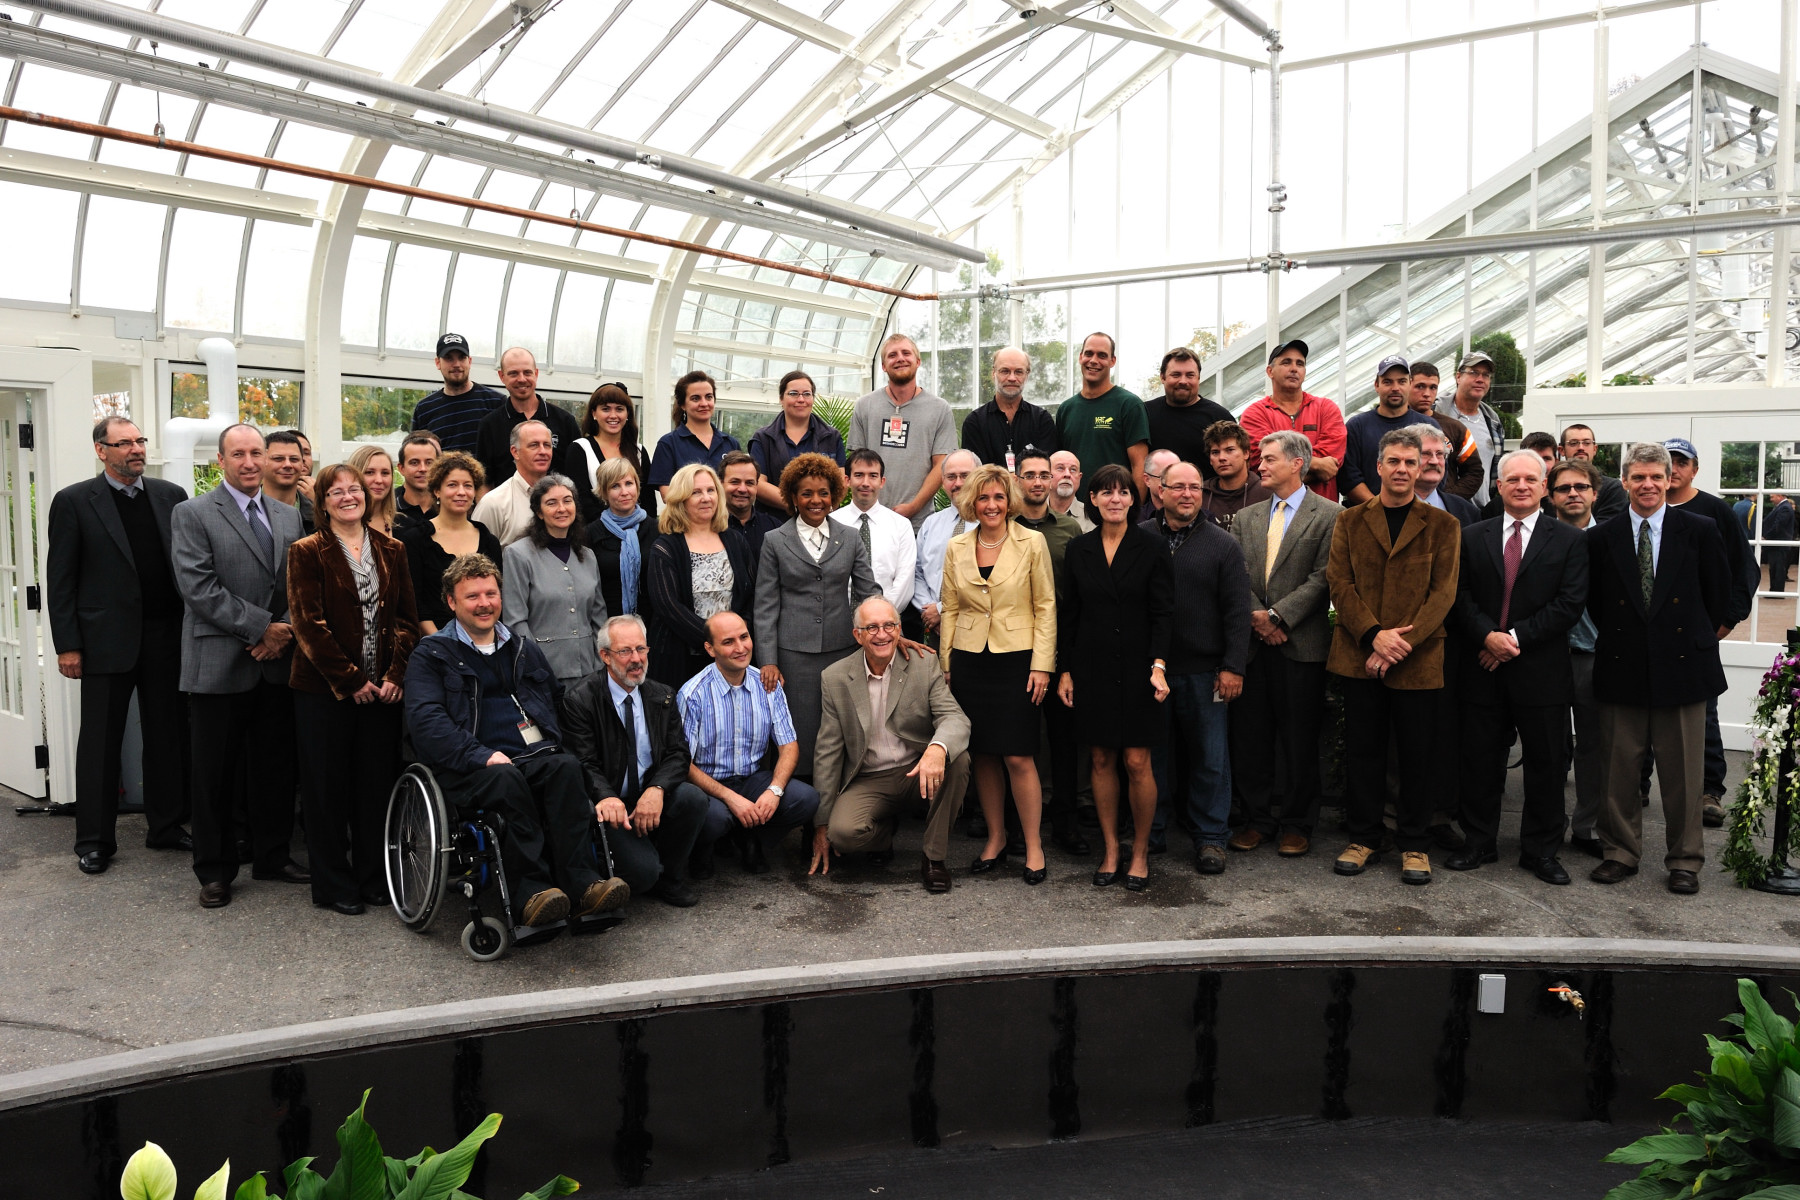 A group picture was taken with all the staff that worked on restoring one of the few tropical greenhouses in the country.